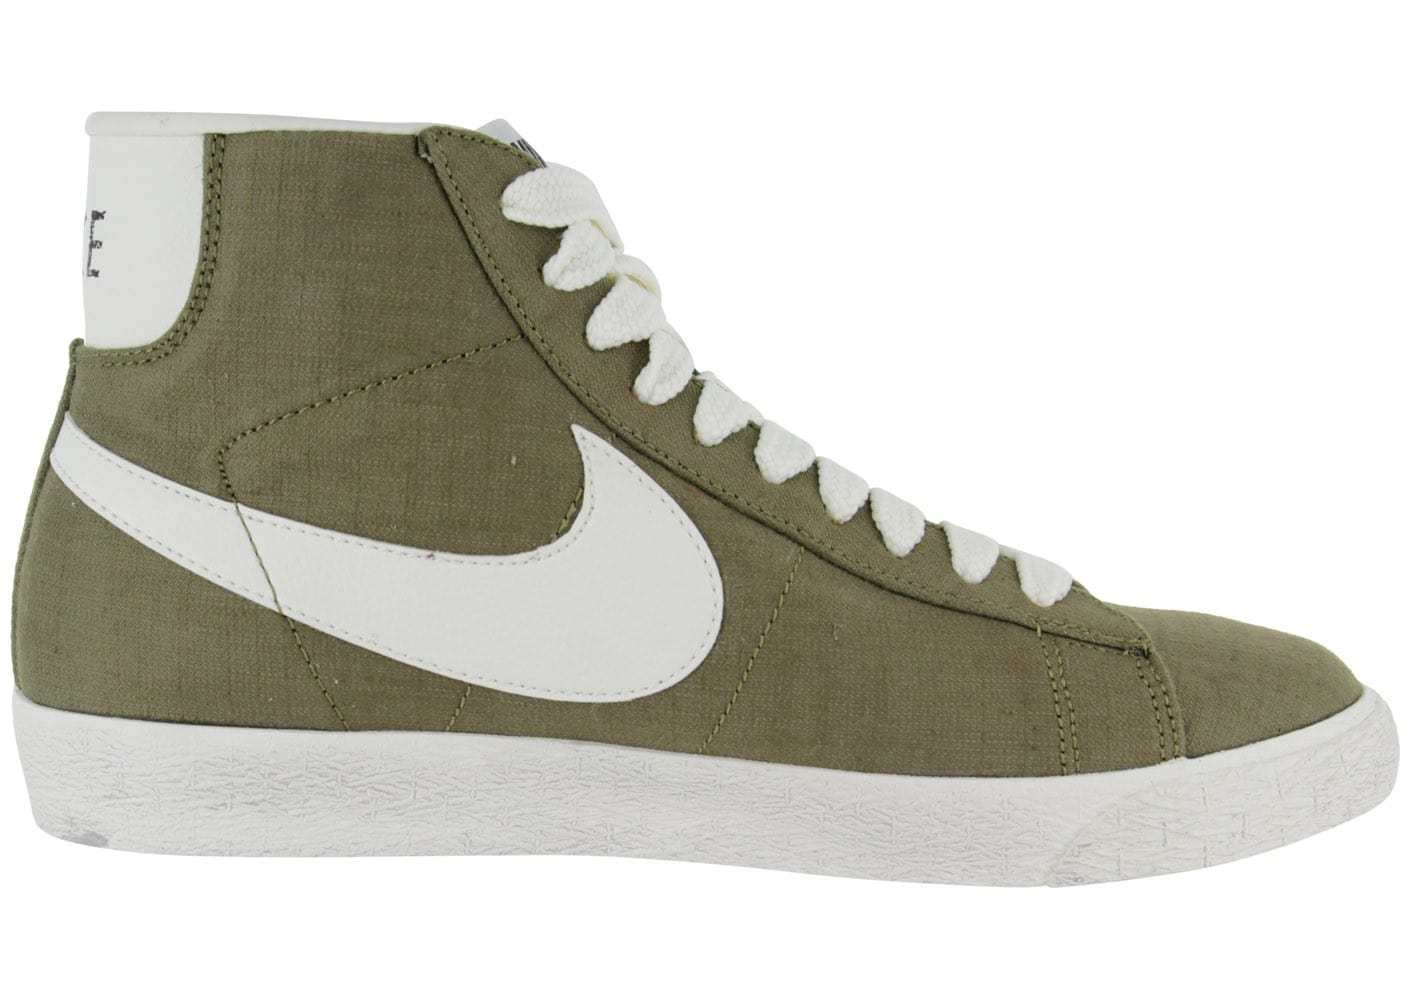 nike blazer mid toile kaki chaussures homme chausport. Black Bedroom Furniture Sets. Home Design Ideas